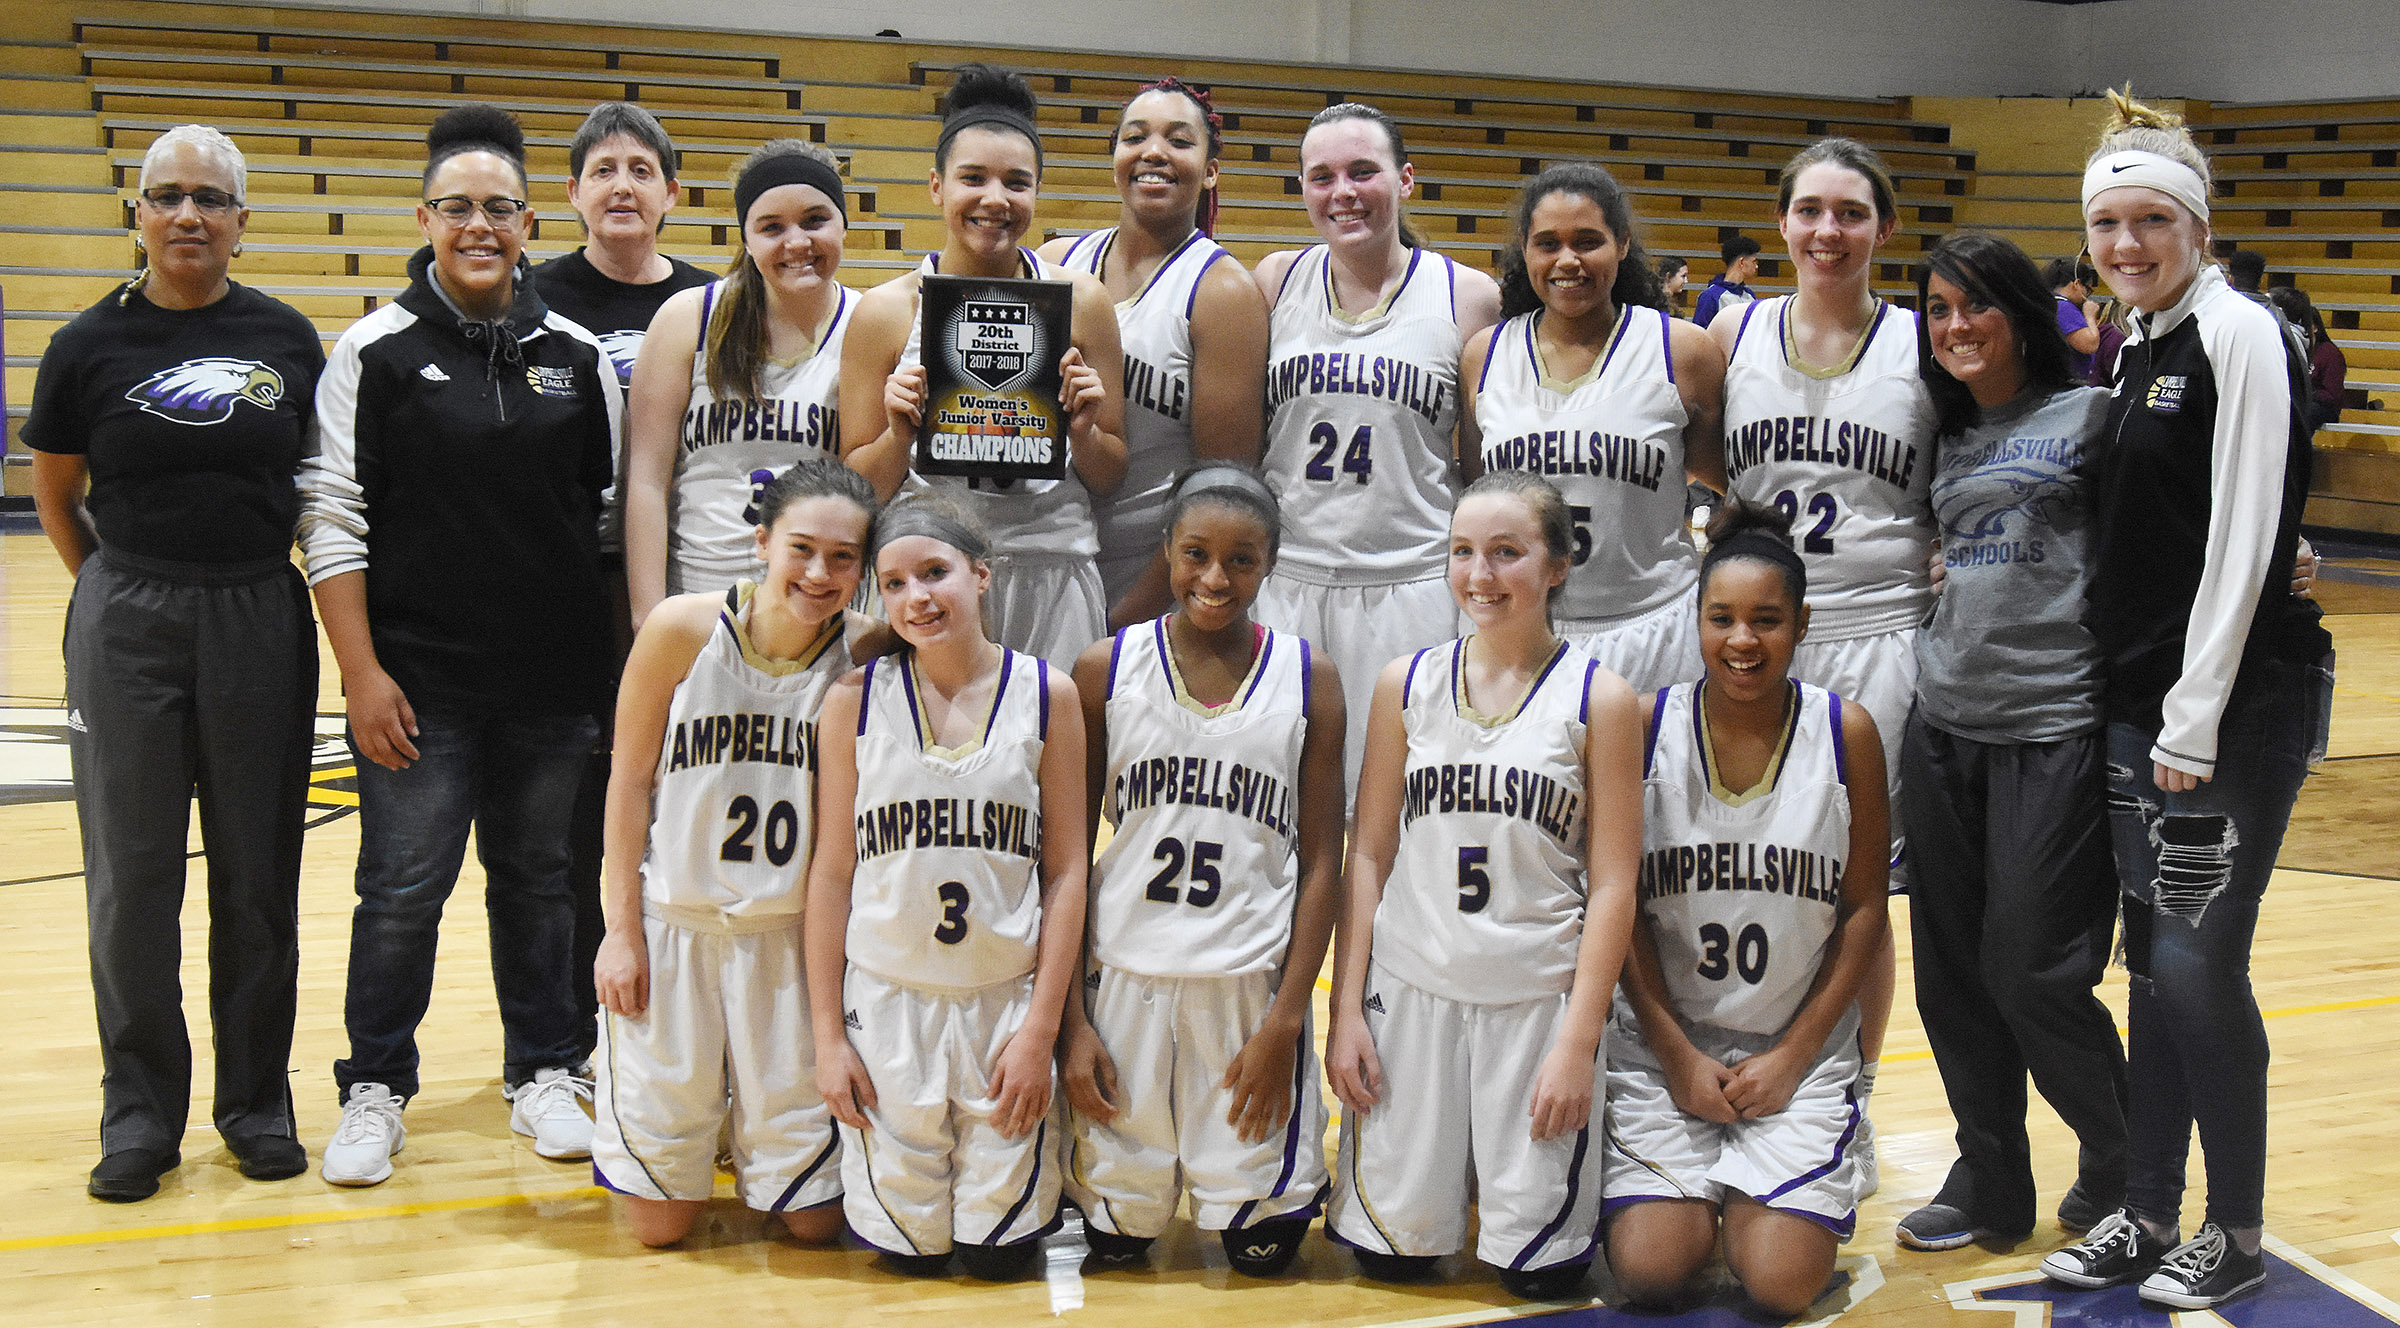 Campbellsville High School girls' junior varsity basketball team is this year's 20th District tournament champions. From left, front, are sophomore Bailey Thompson, Campbellsville Middle School eighth-graders Rylee Petett, Bri Gowdy and Lainey Watson and sophomore Isis Coleman. Back, coach Debbie Gowdy-Smith, junior Dee Simpson, coach Katie Wilkerson, freshman Kenzi Forbis, sophomore Kalisha Murphy, junior Malaya Hoskins, sophomores Katelyn Miller and Siera Owens, freshman Abi Weidewitsch, coach Natalia Warren and freshman Catlyn Clausen.